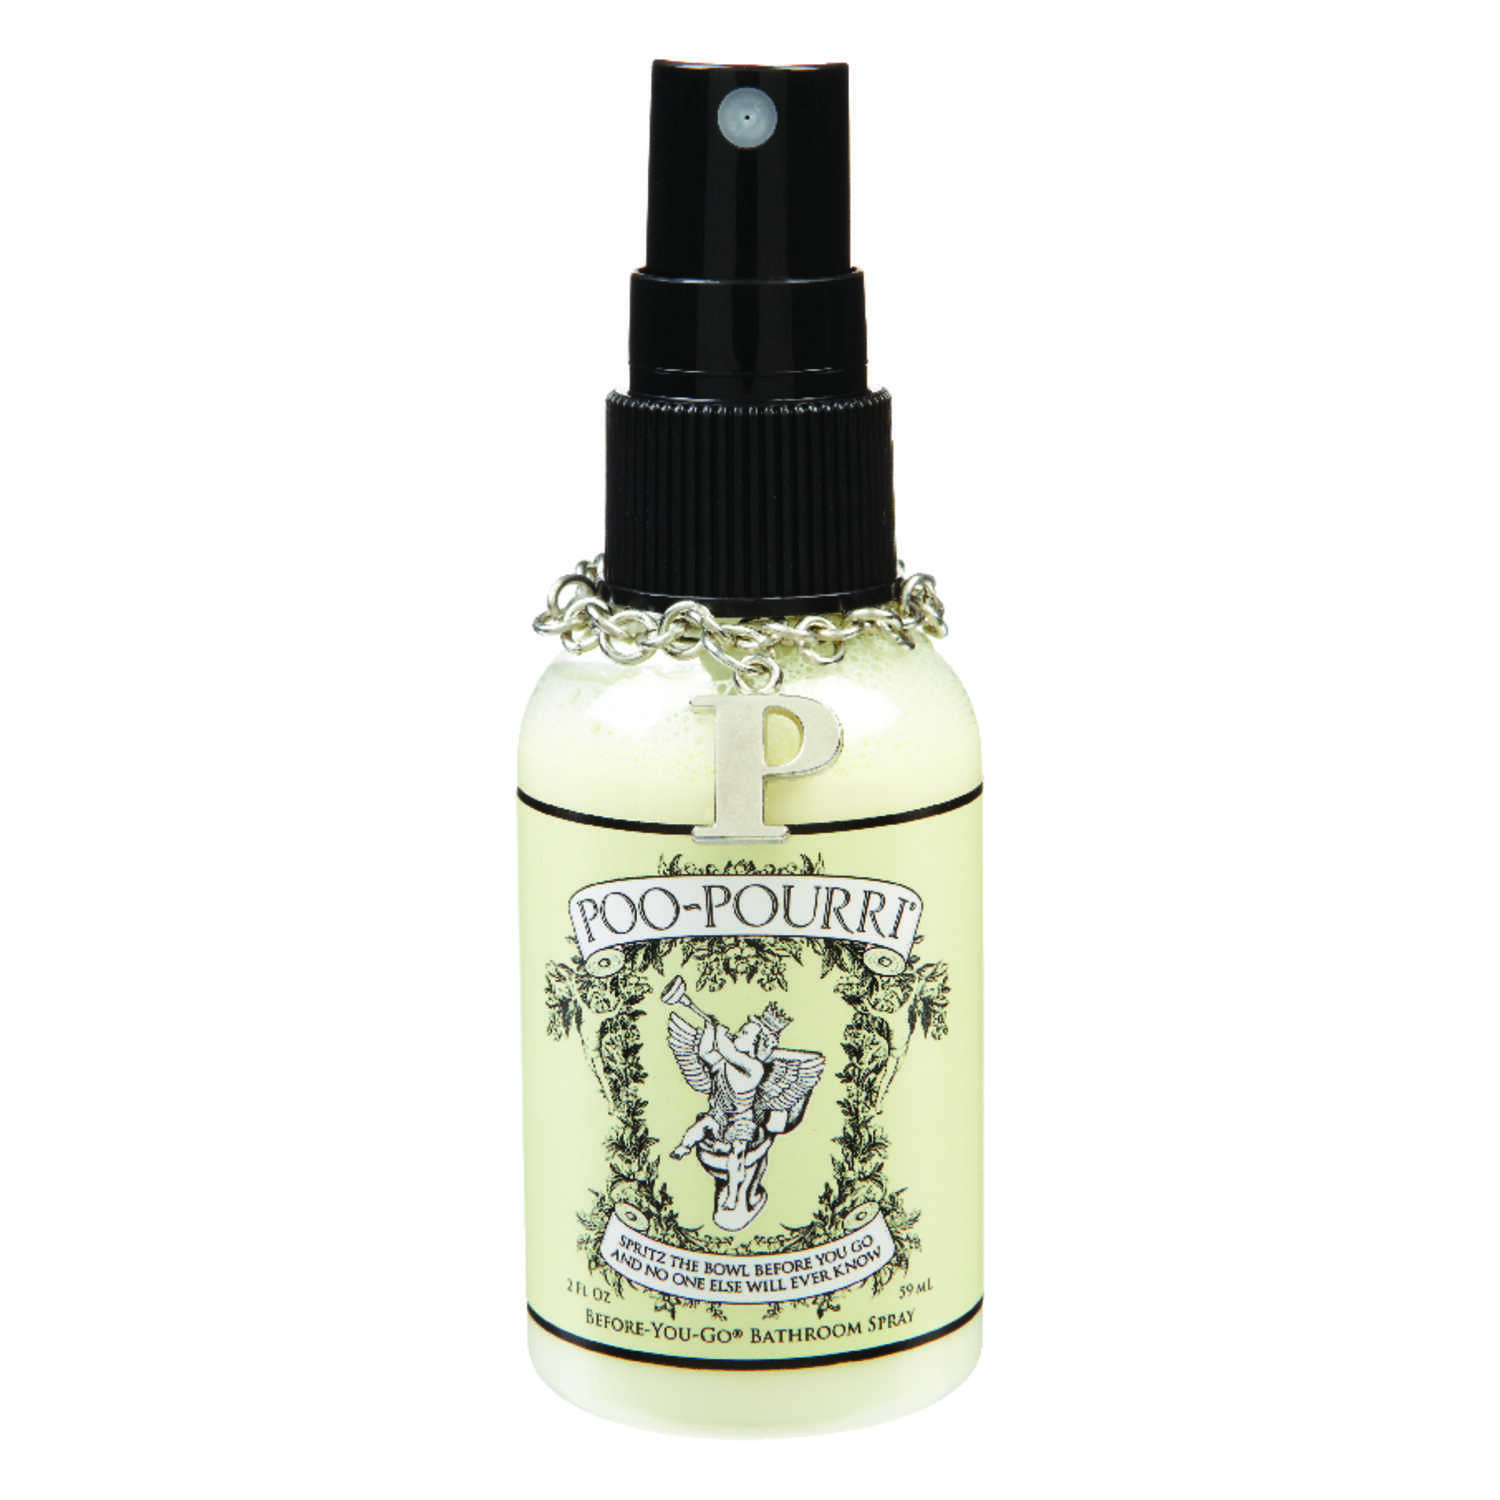 Poo-Pourri  Original Citrus Scent Odor Eliminator  2 oz. Liquid